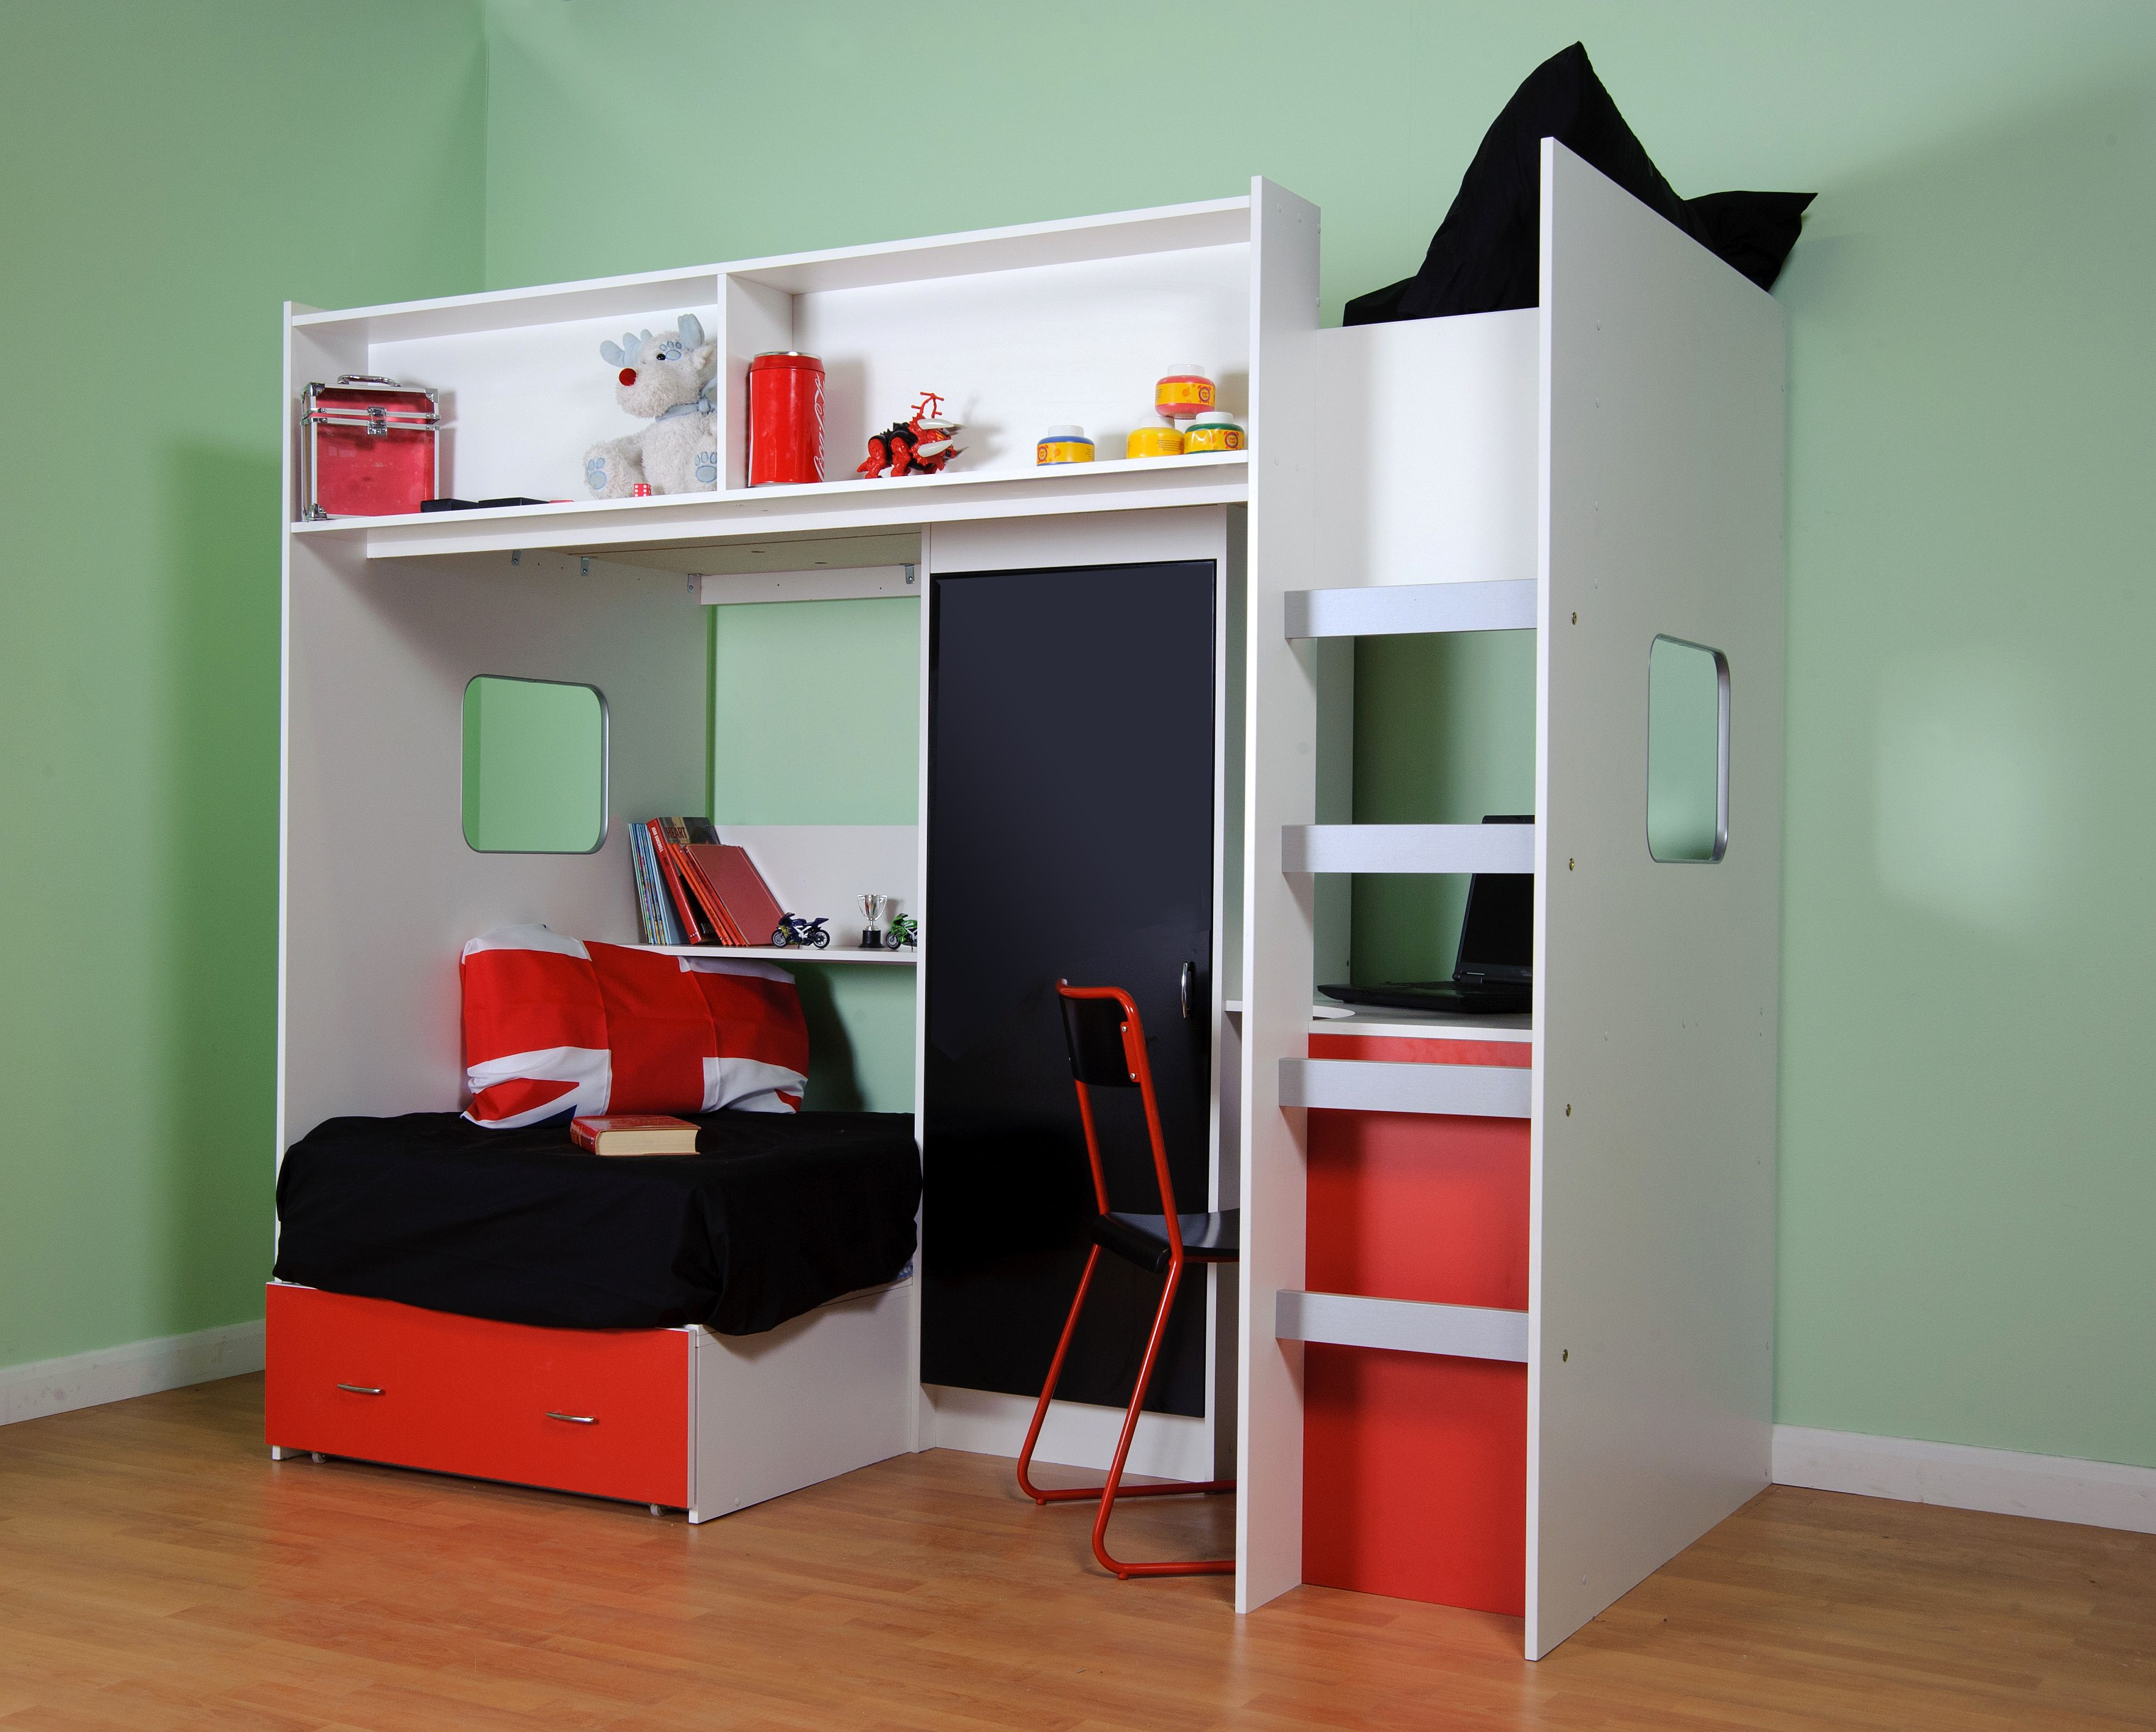 Rutland high sleeper cabin bed it has all the storage space your child could need